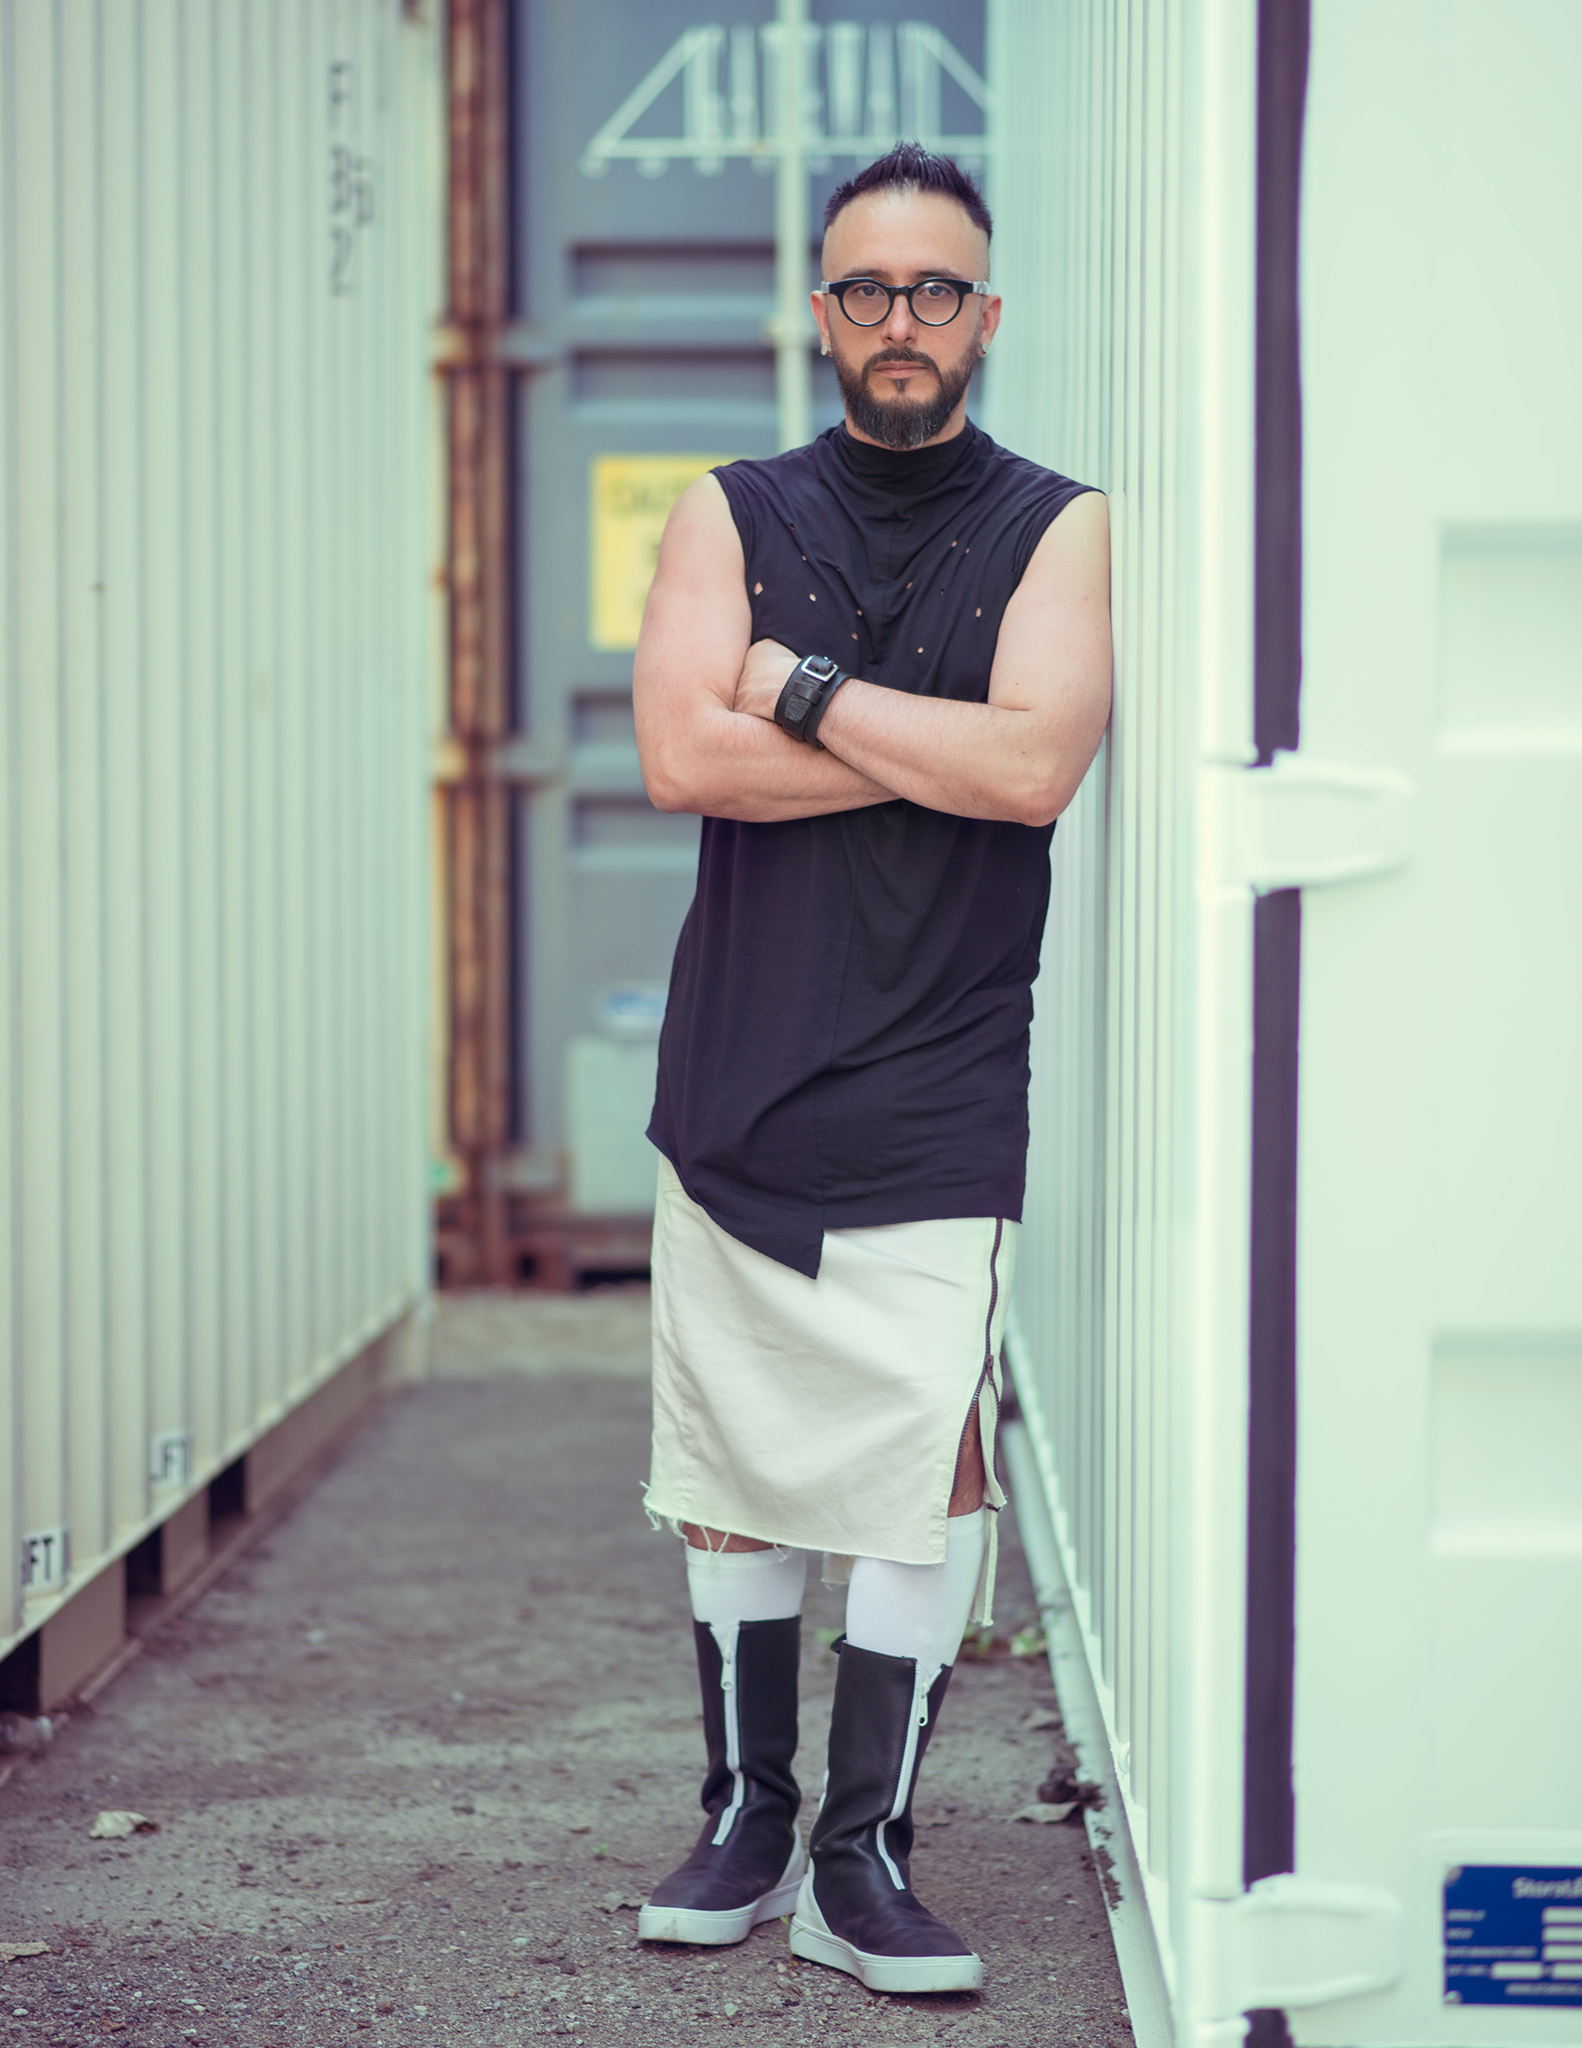 Emerging Genderless, Sustainable, & Futuristic Clothing Brand is Creating a Major Buzz Worldwide for its New Philosophy in Fashion